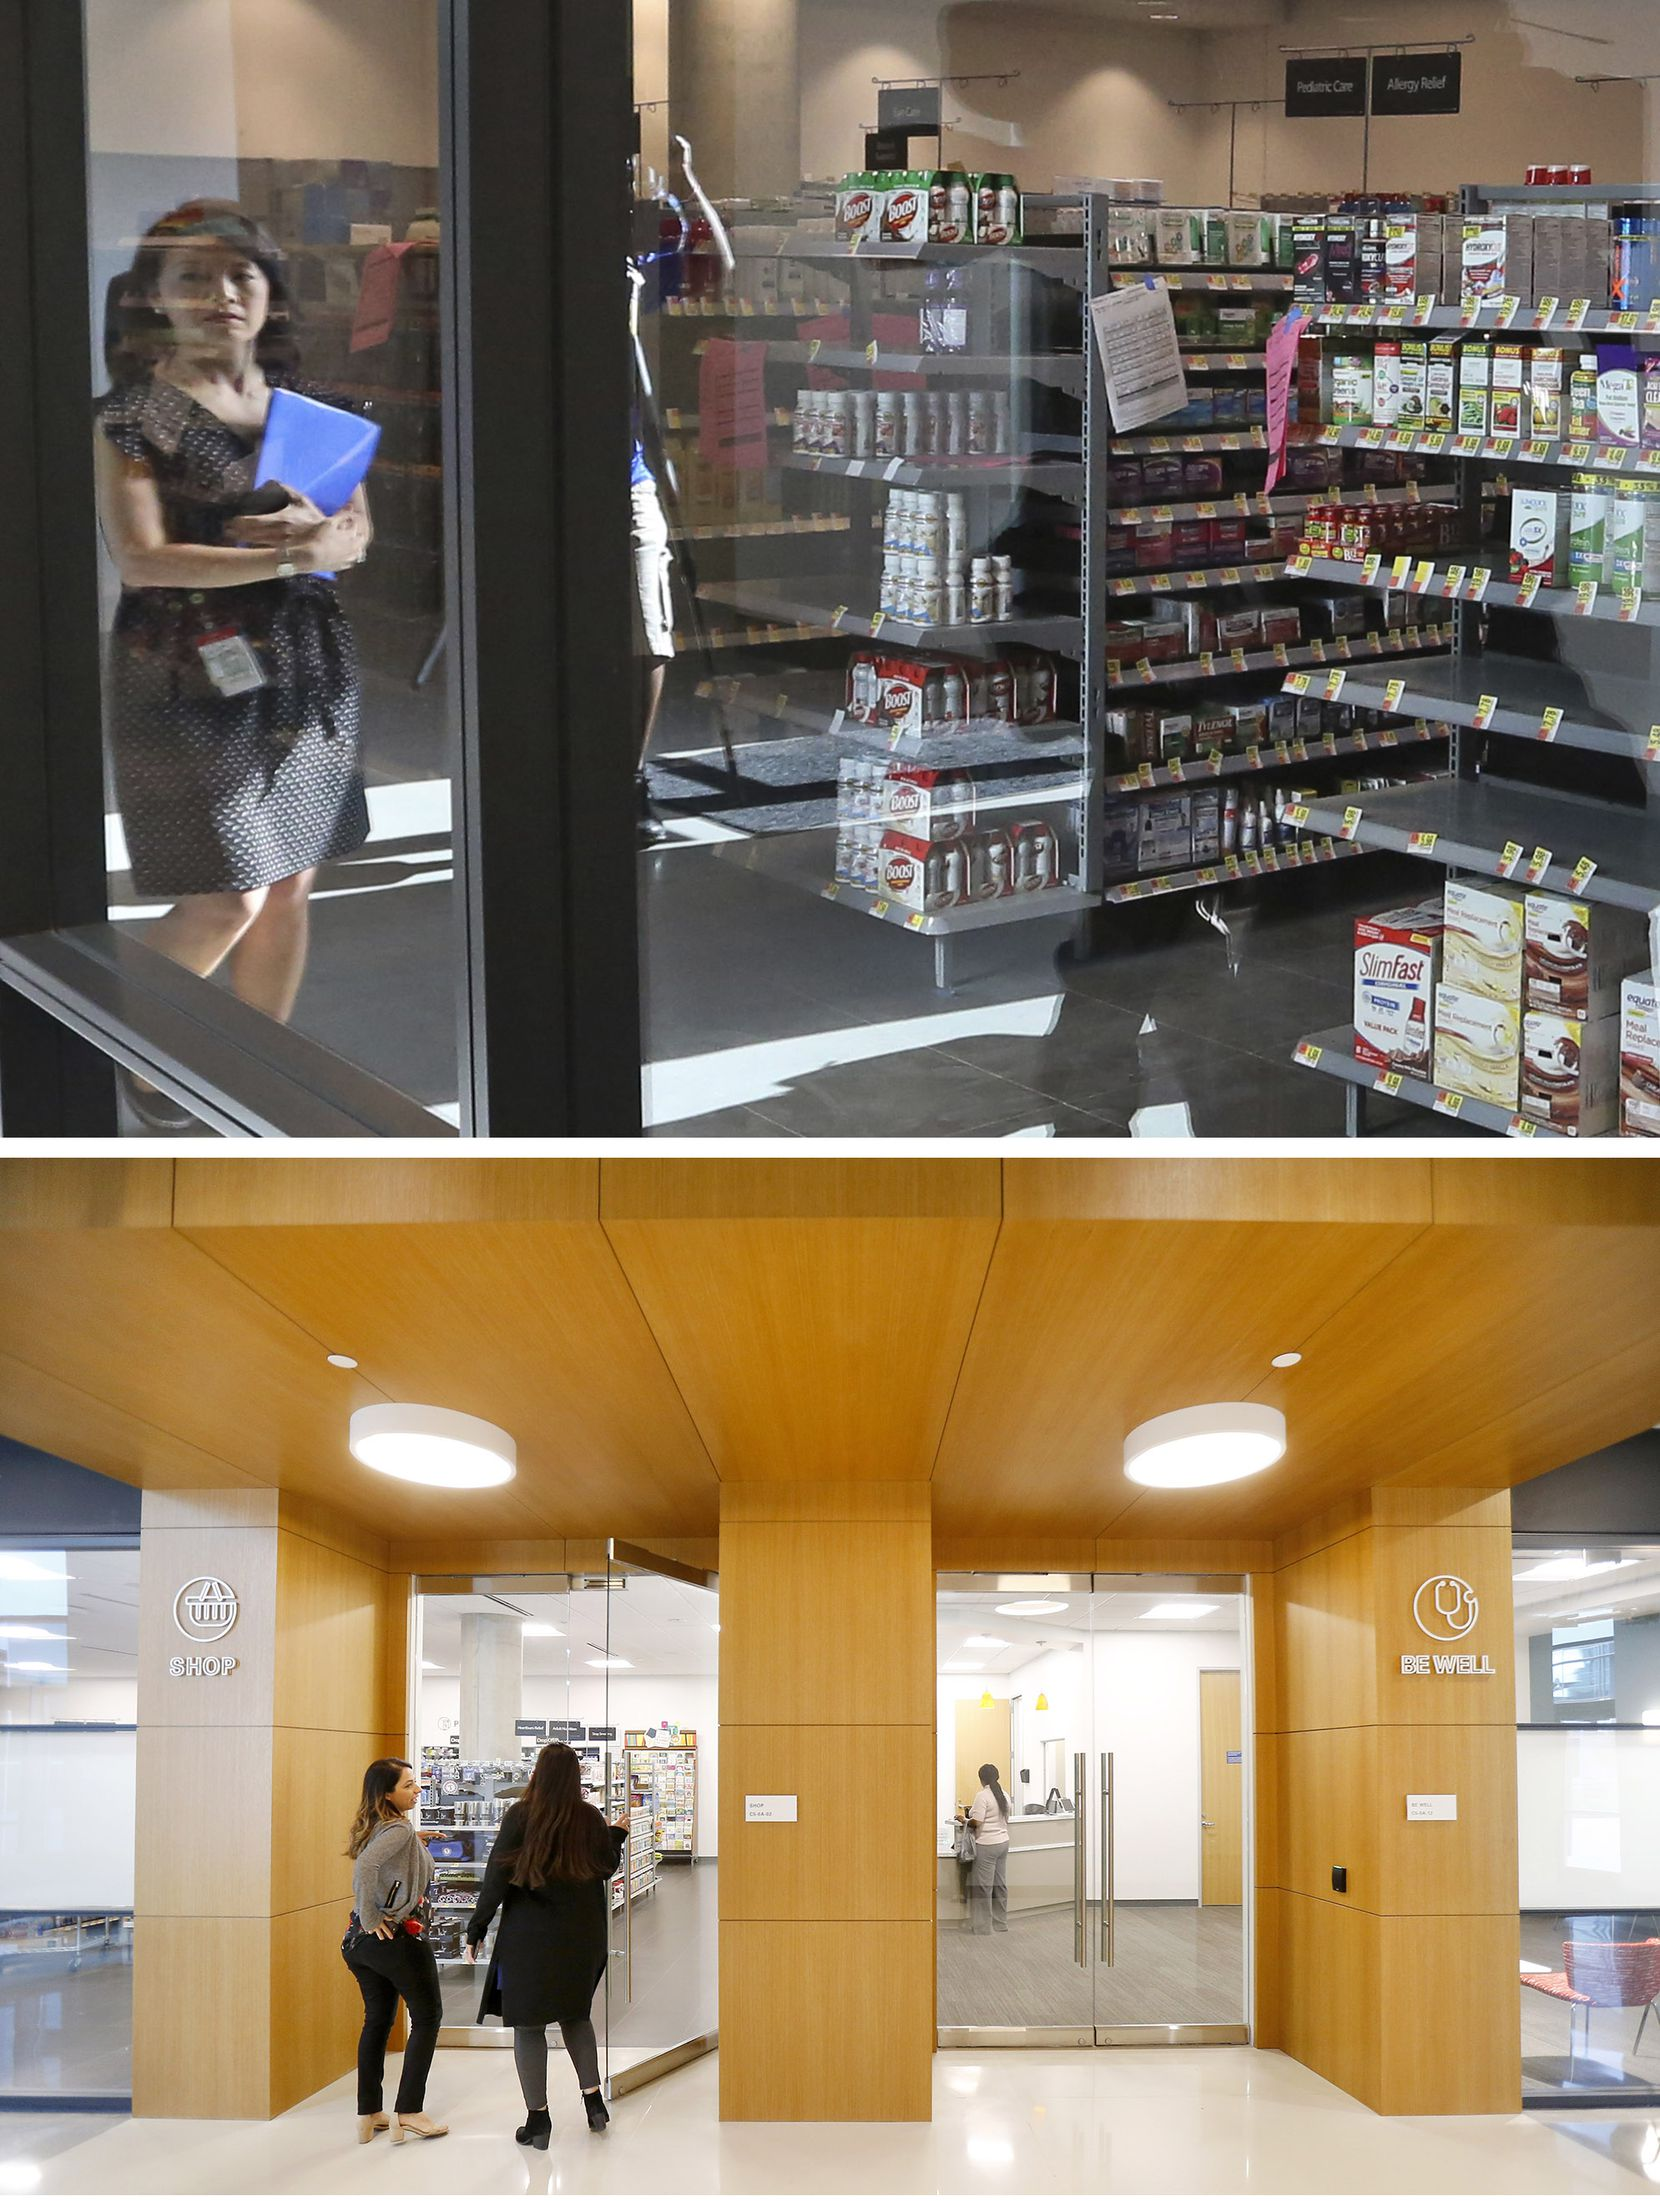 A small store for employees (top) operates on campus at the Toyota headquarters. The entrance to the pharmacy and convenience store run by Wal-Mart (below) is next to a Be Well medical clinic.